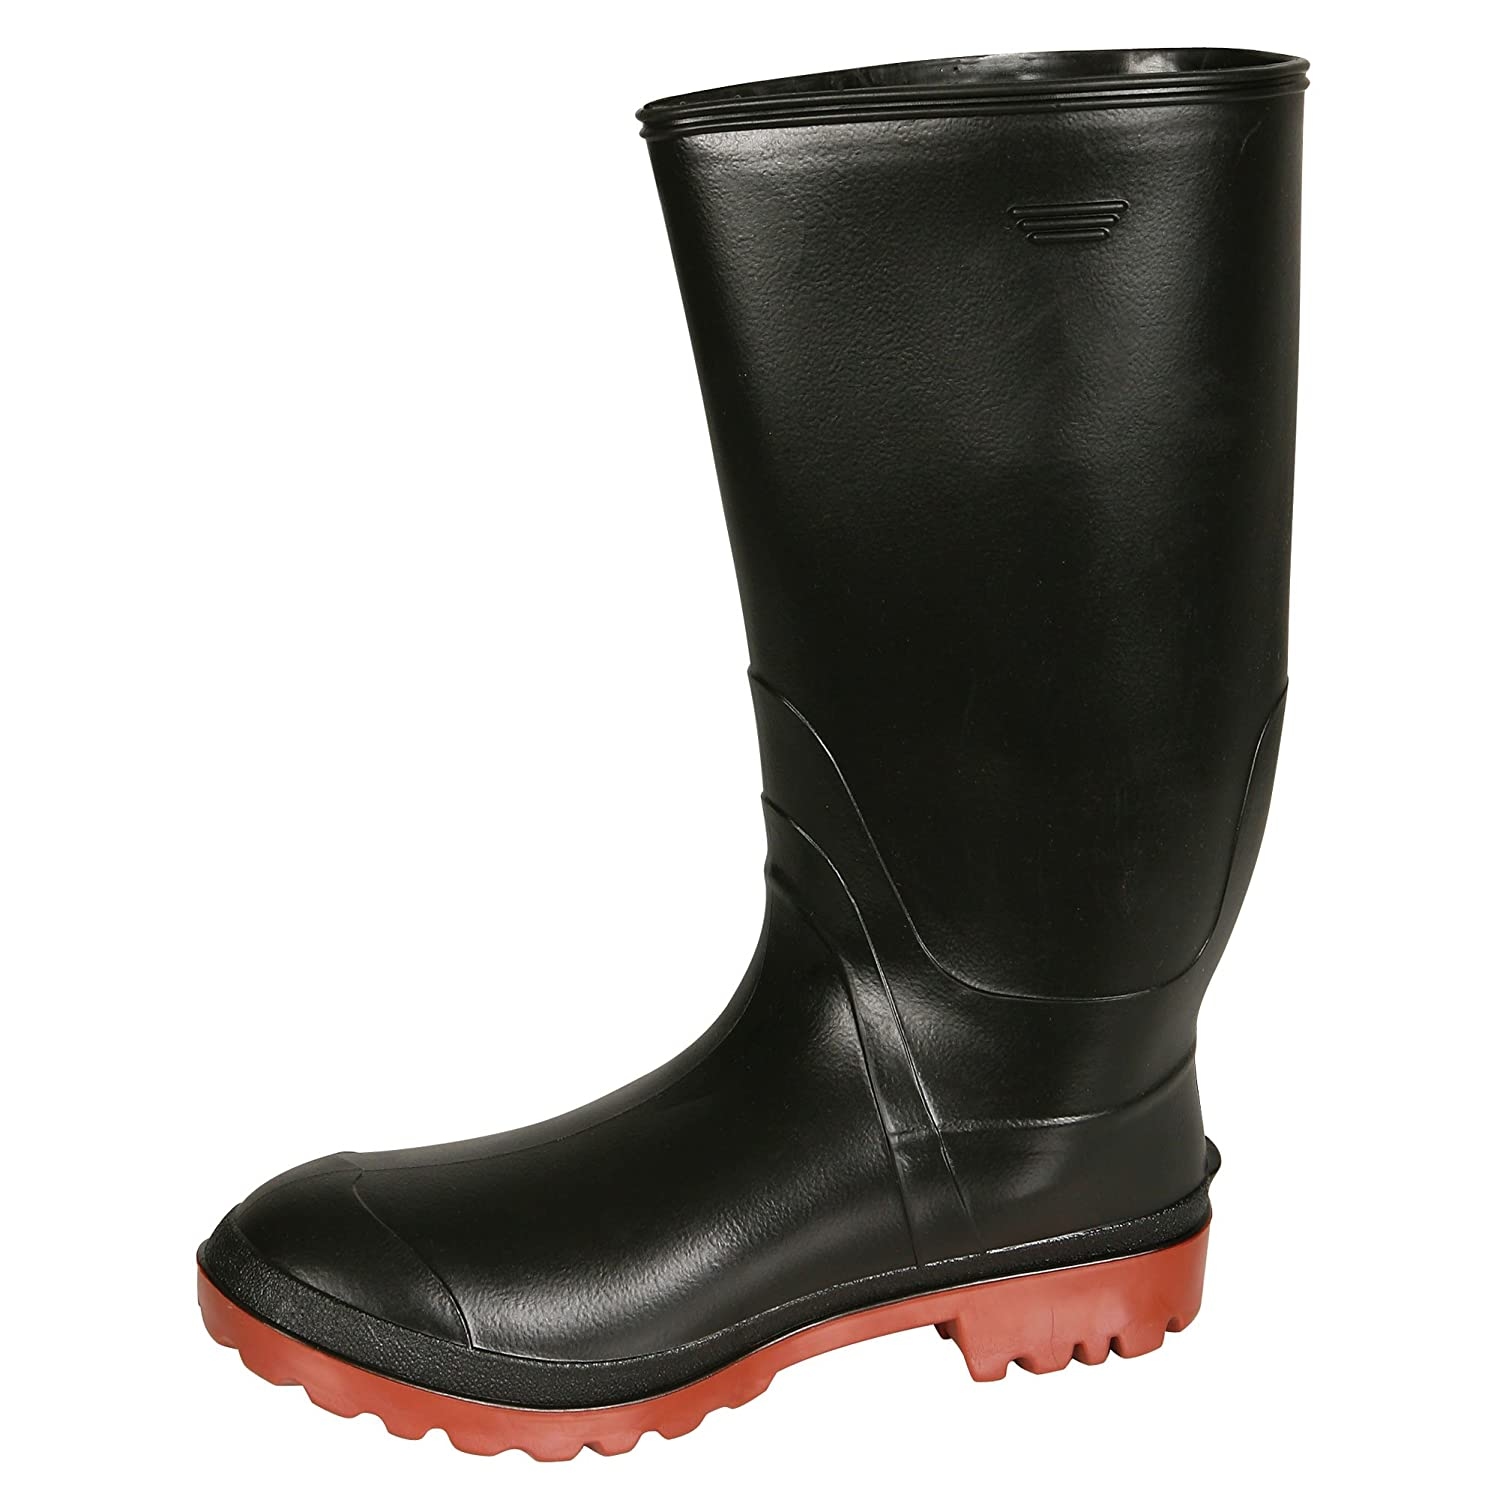 Kamik Men's Ranger Rubber Boots Black